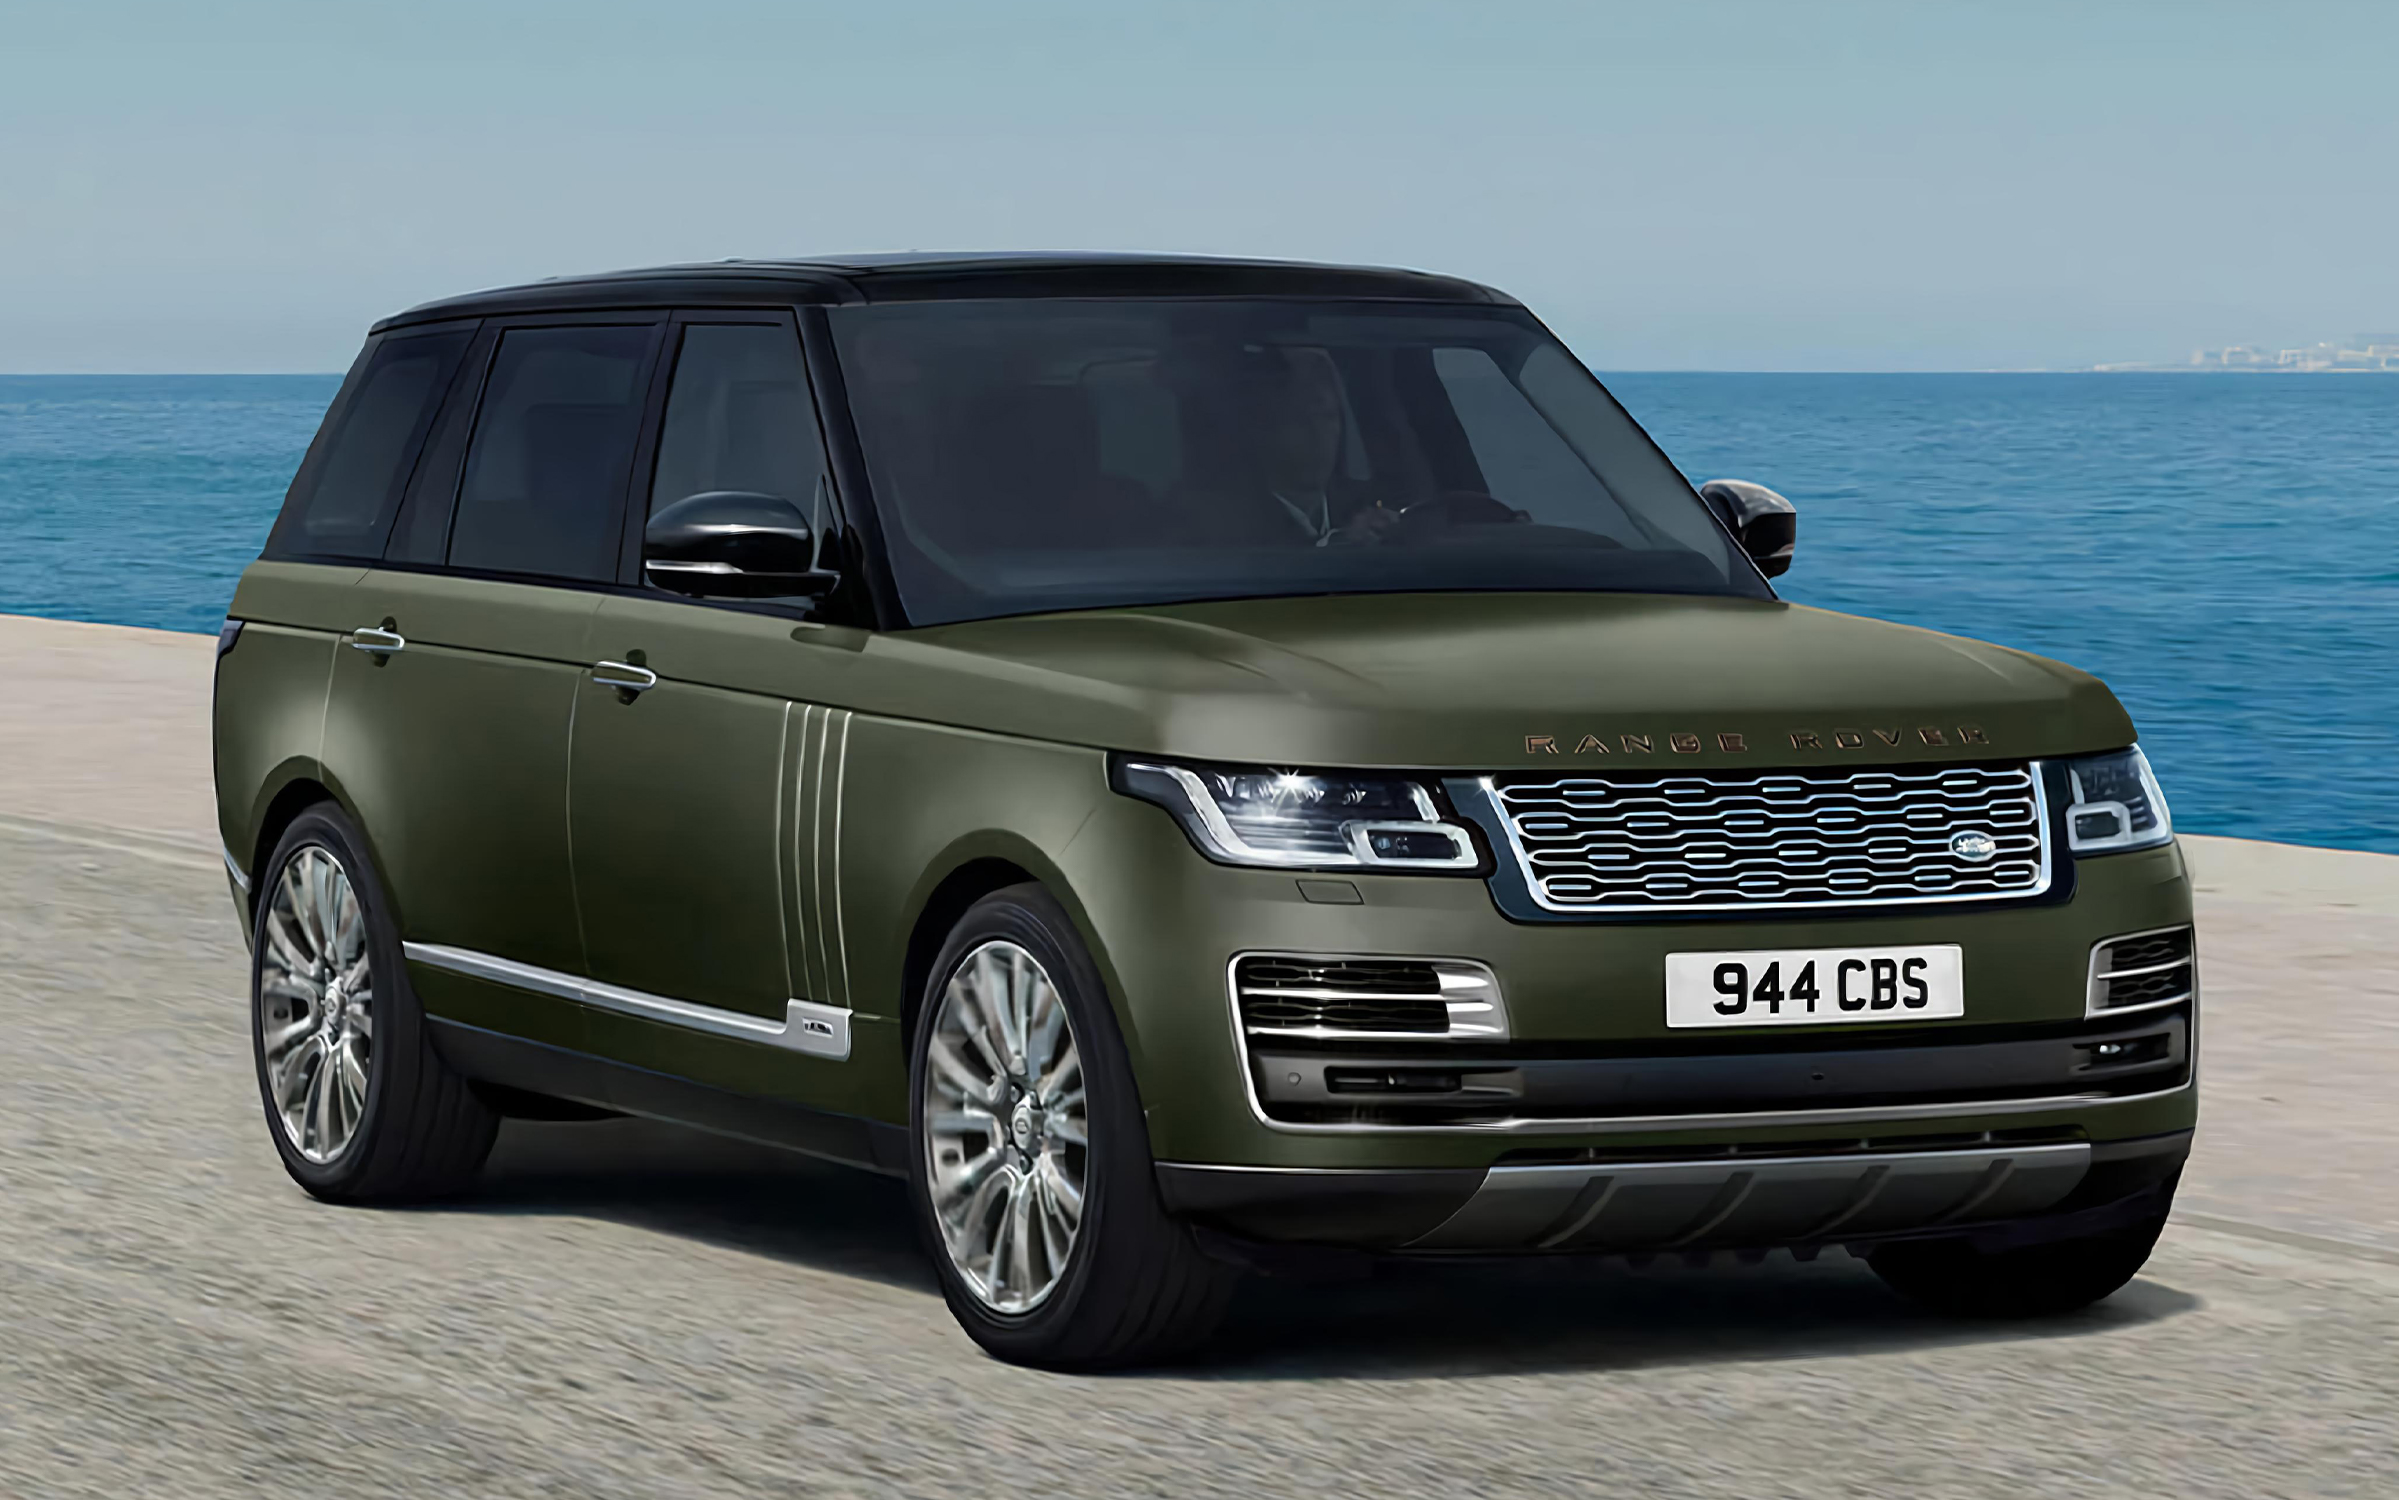 2022 Range Rover SVAutobiography Ultimate Edition